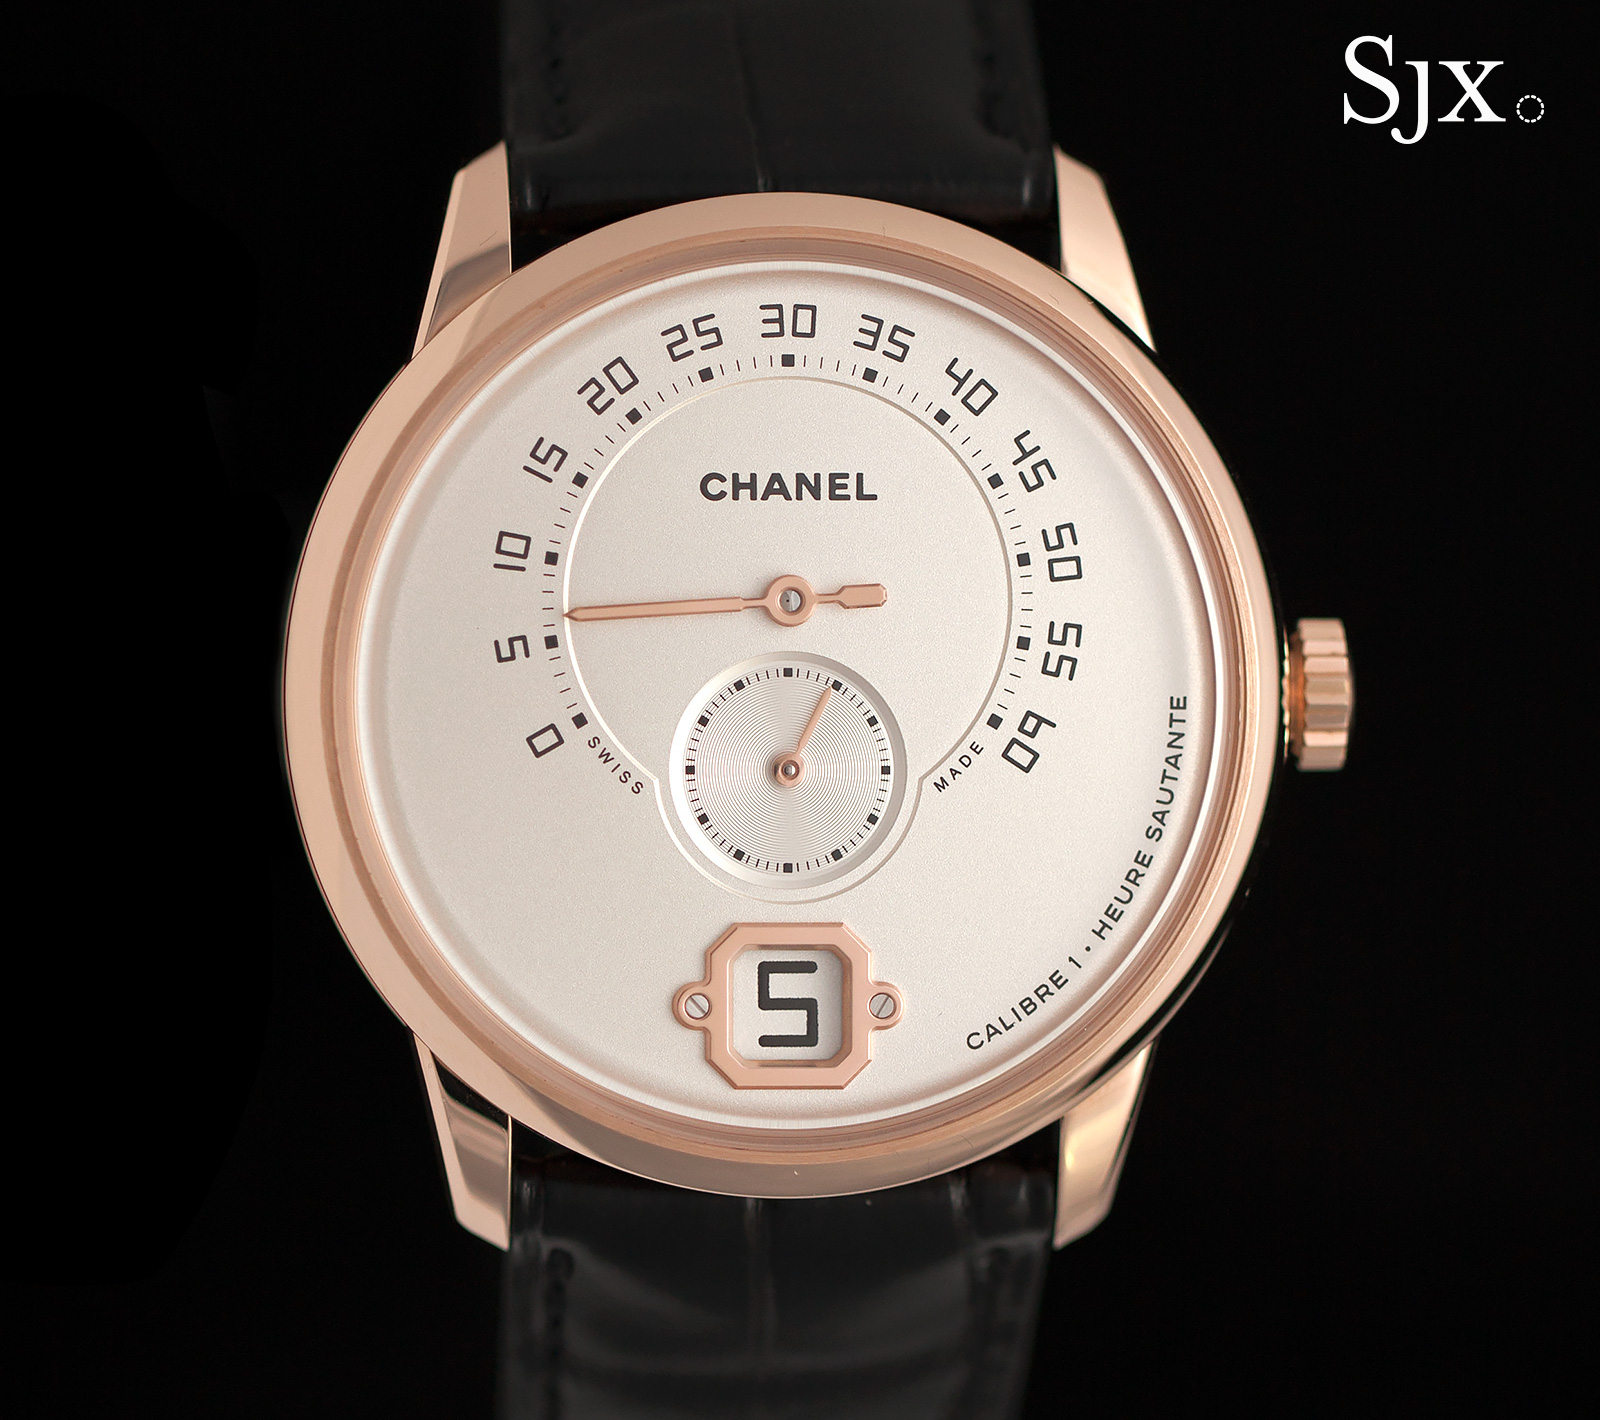 Monsieur de Chanel 1